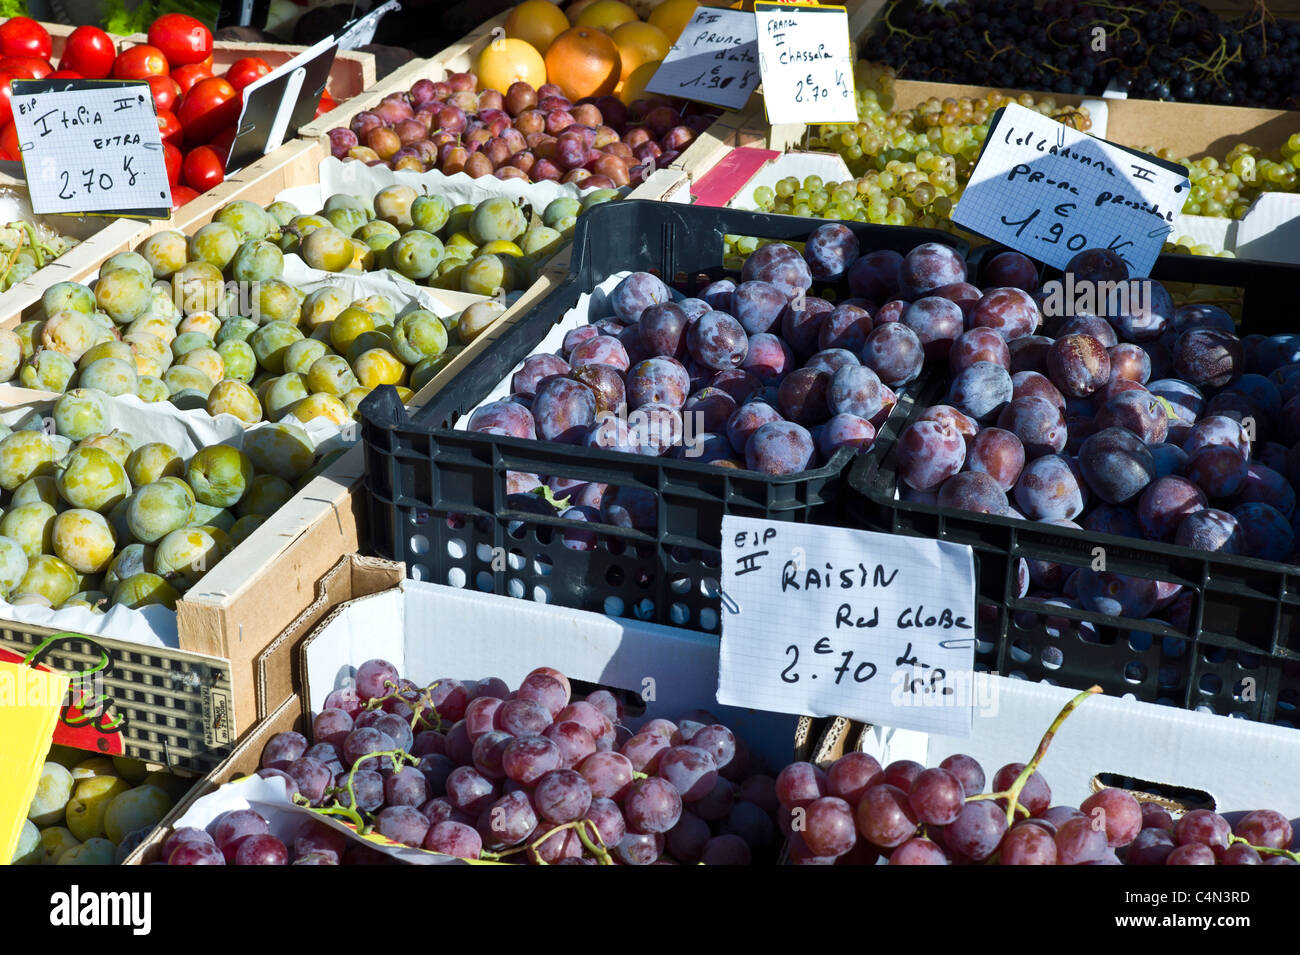 Plums, grapes and greengages fresh fruit on sale at food market at La Reole in Bordeaux region of France - Stock Image